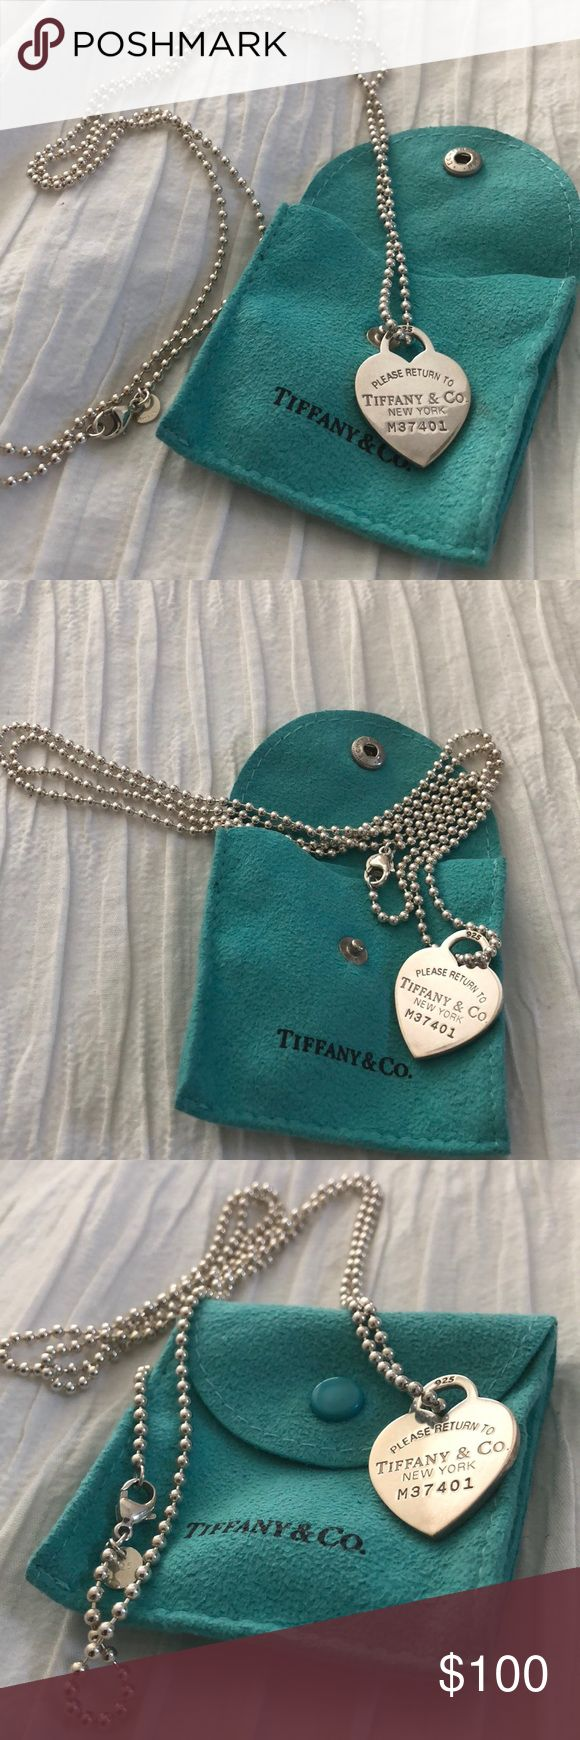 Tiffany & Co. Return to Tiffany Heart Necklace 34 Pristine condition, worn 1x Jewelry Necklaces